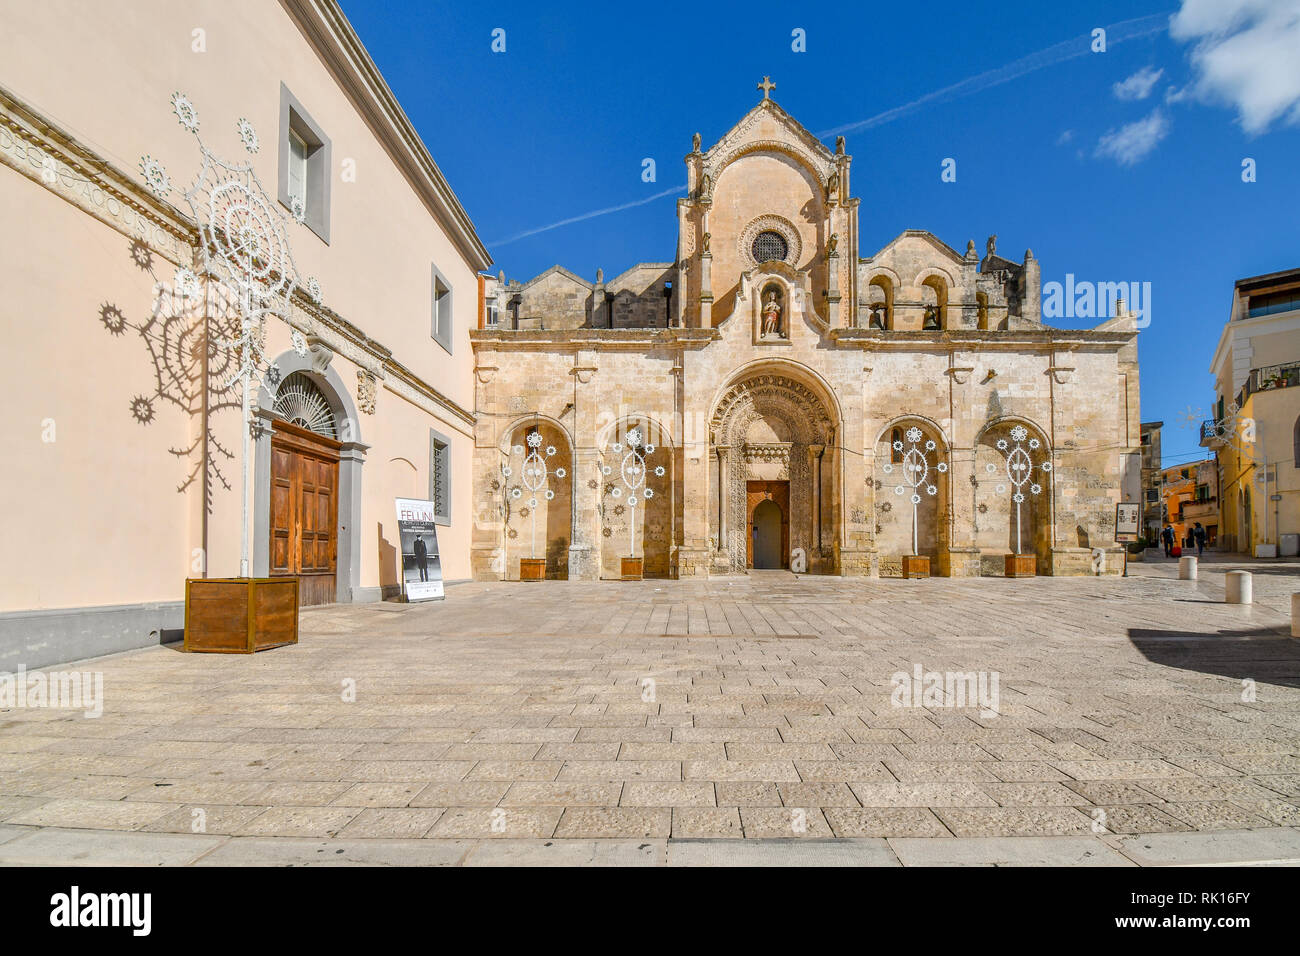 The San Giovanni Battista Parish church, one of the most important churches in Matera, located outside the historical center of Matera, Italy Stock Photo